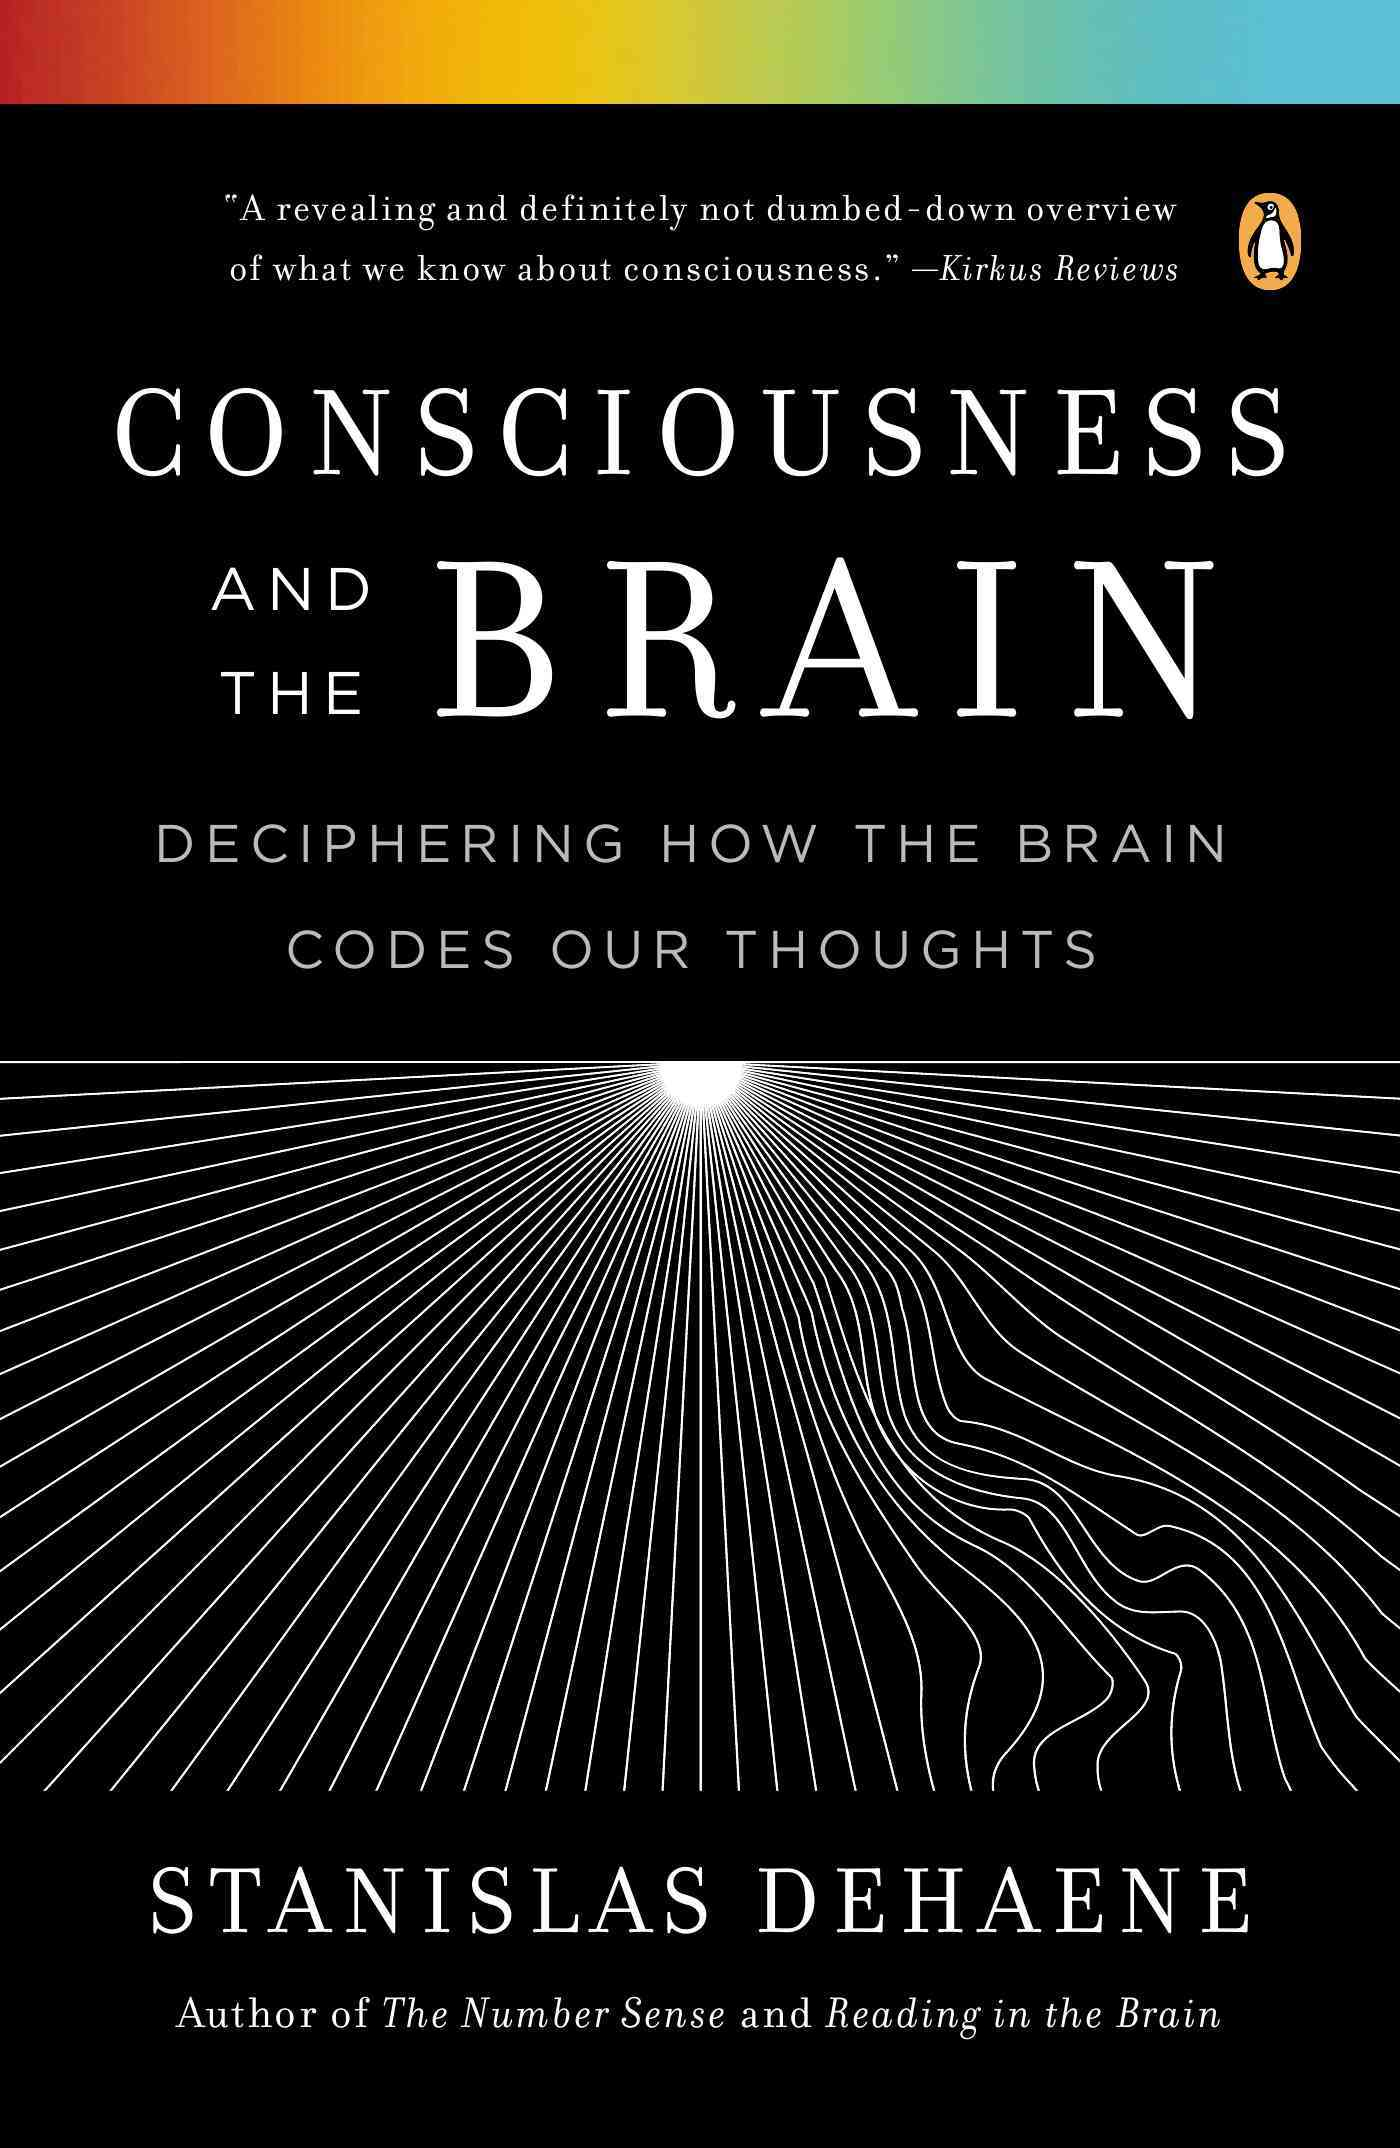 Consciousness and the Brain By Dehaene, Stanislas